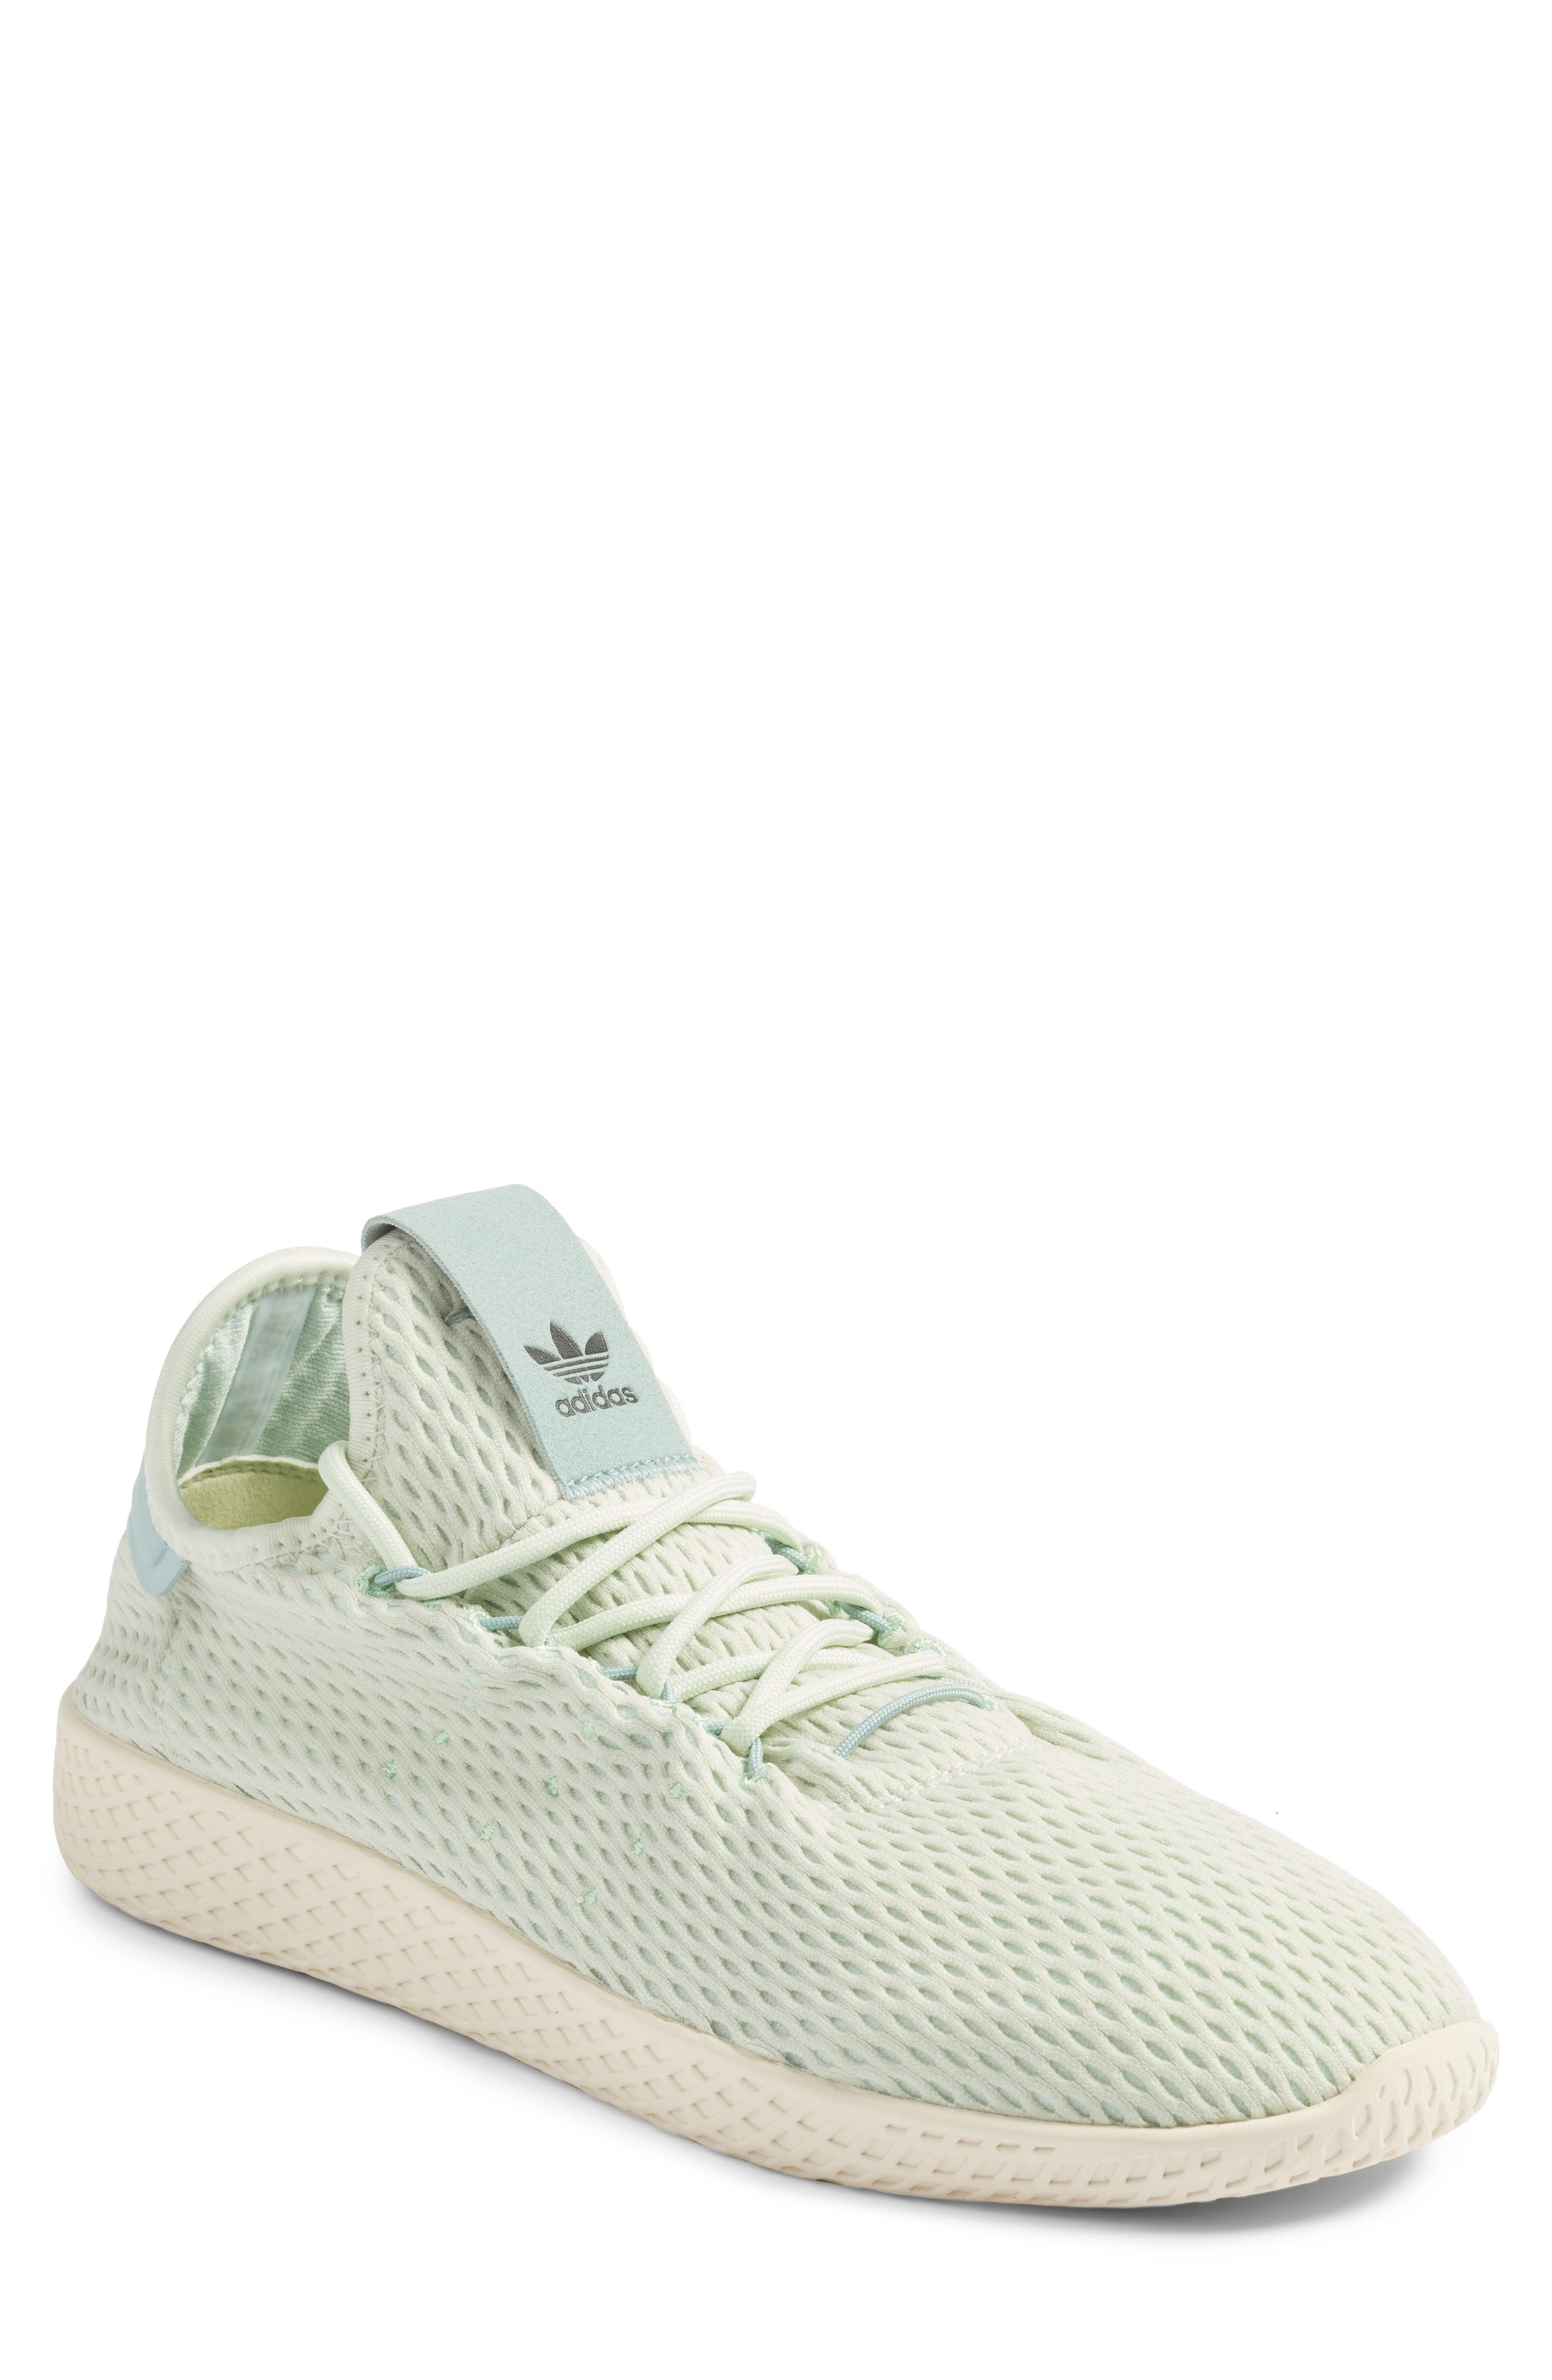 adidas Originals x Pharrell Williams Mesh Sneaker (Men)